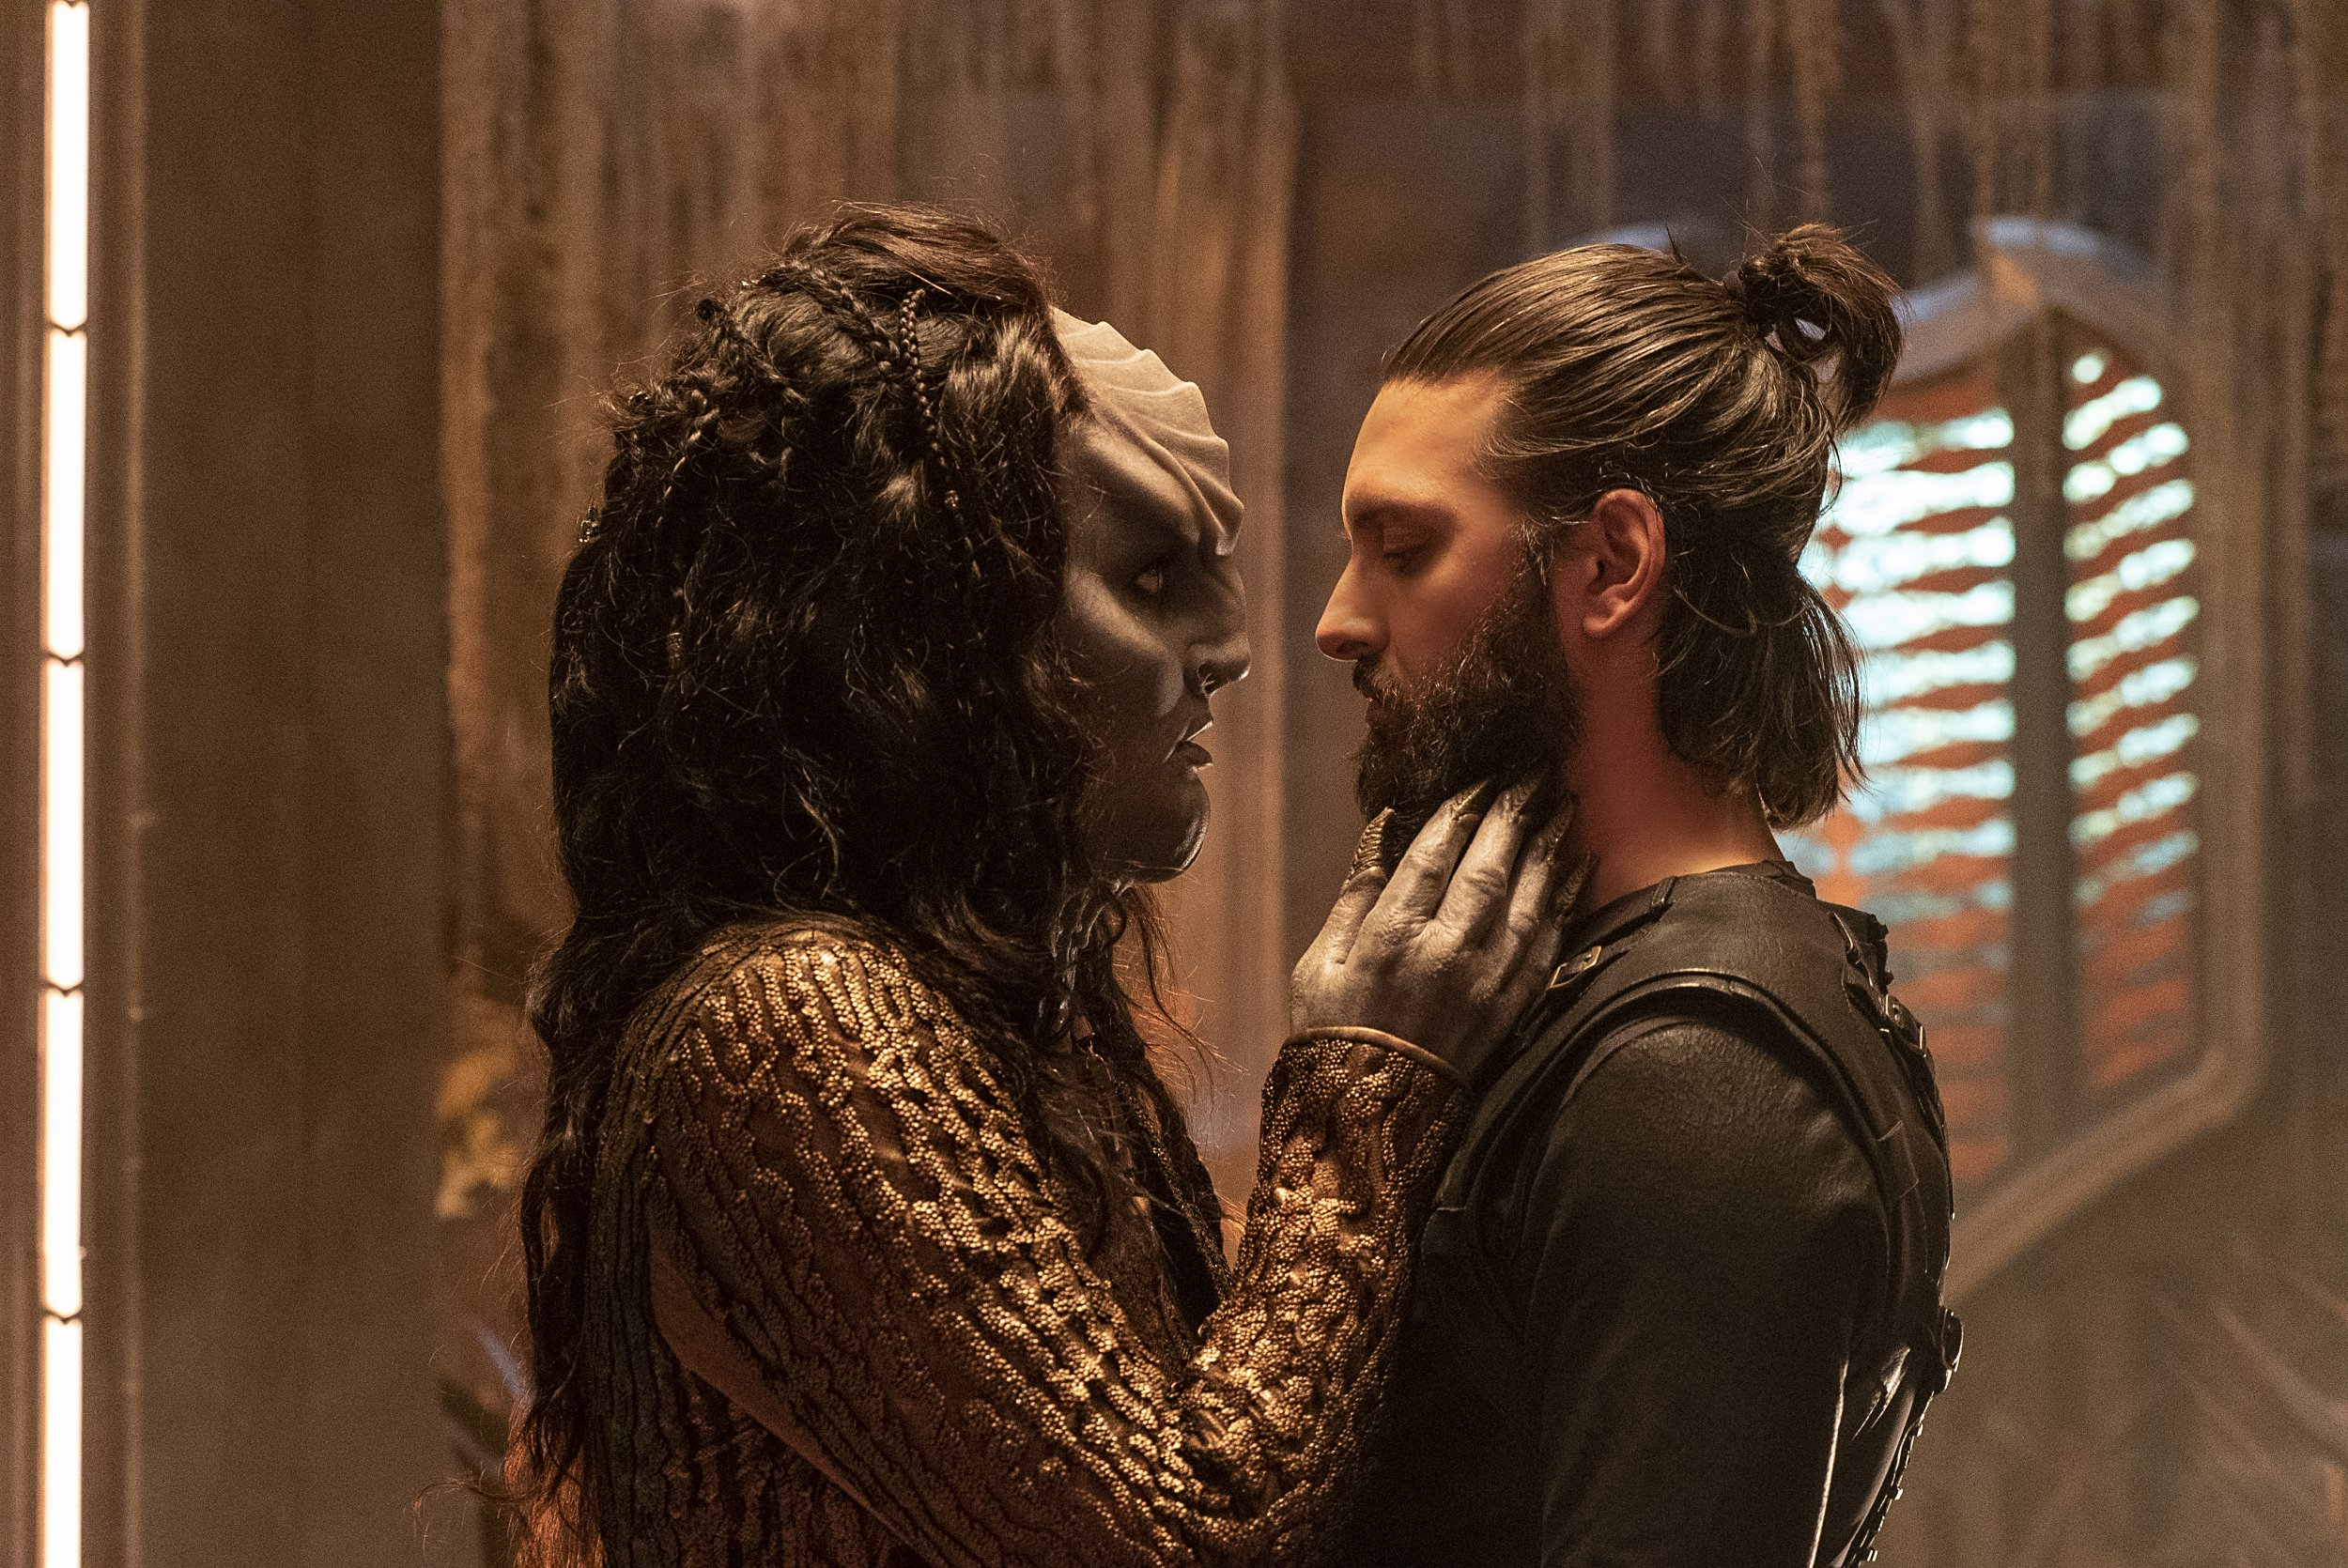 Star Trek: Discovery costume designer on making the Klingons 'a little sexy' in season 2: 'I wanted to show L'Rell was a woman'